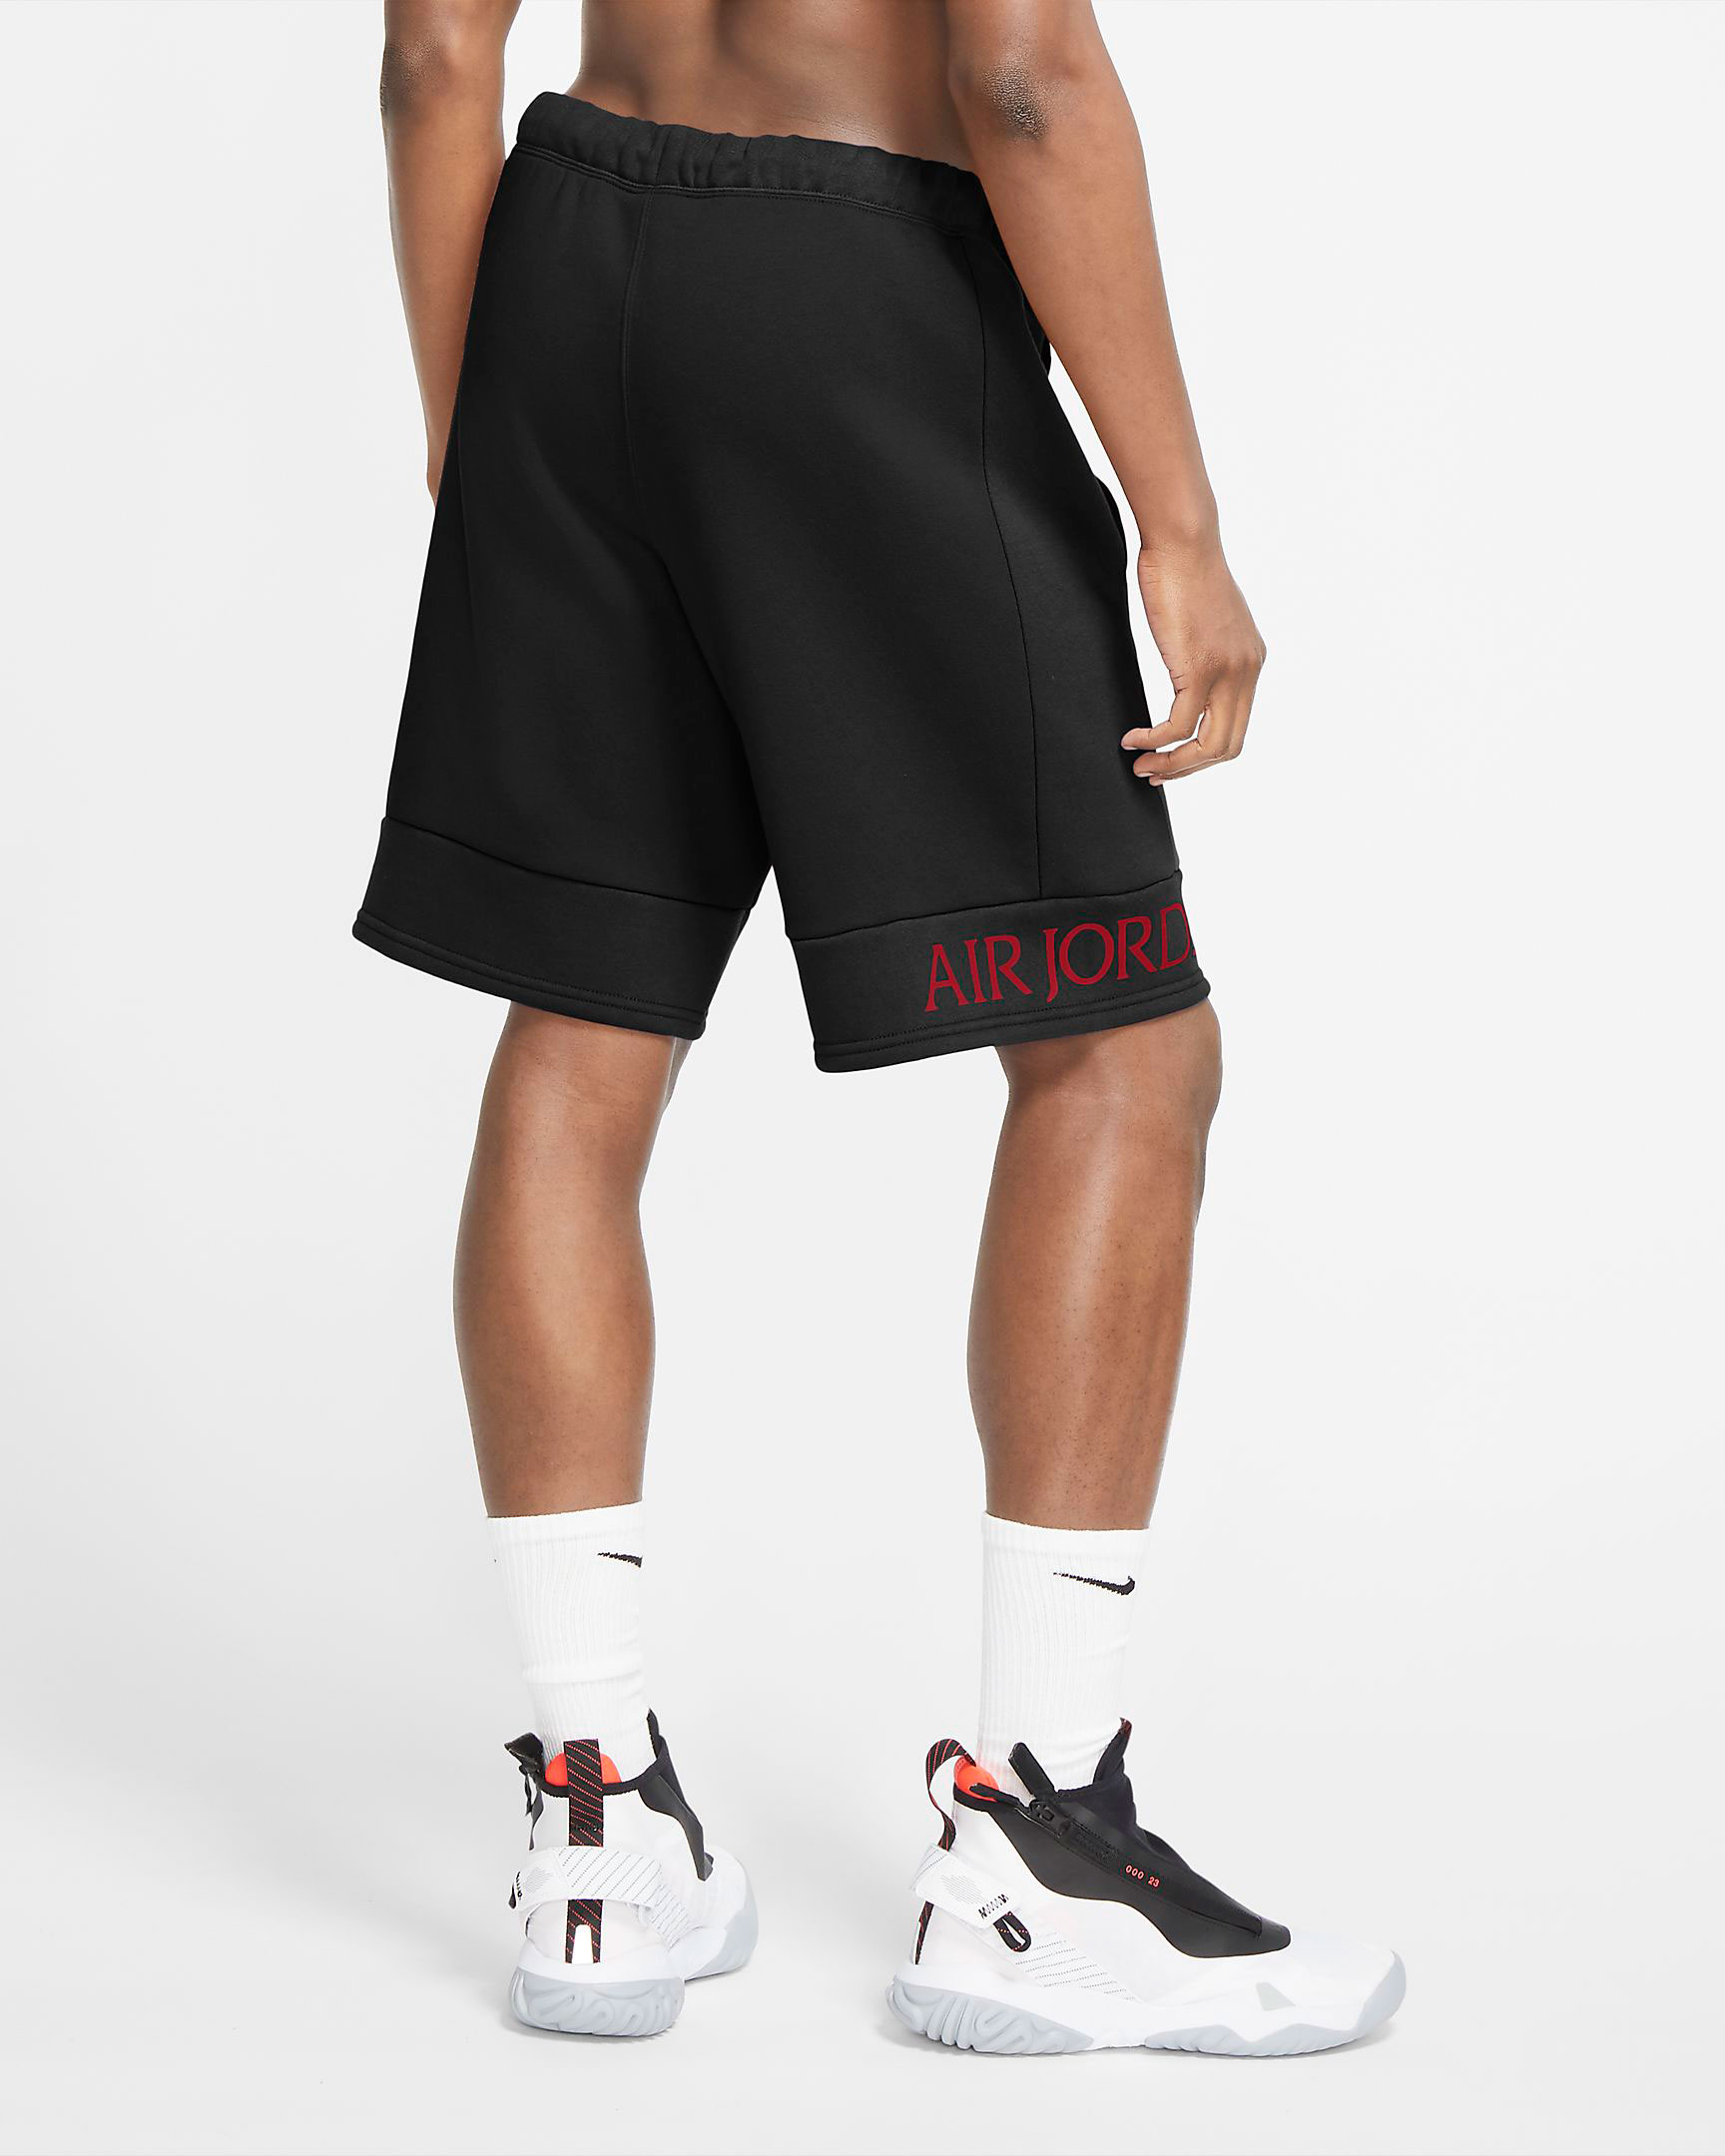 air-jordan-34-zoo-matching-shorts-2